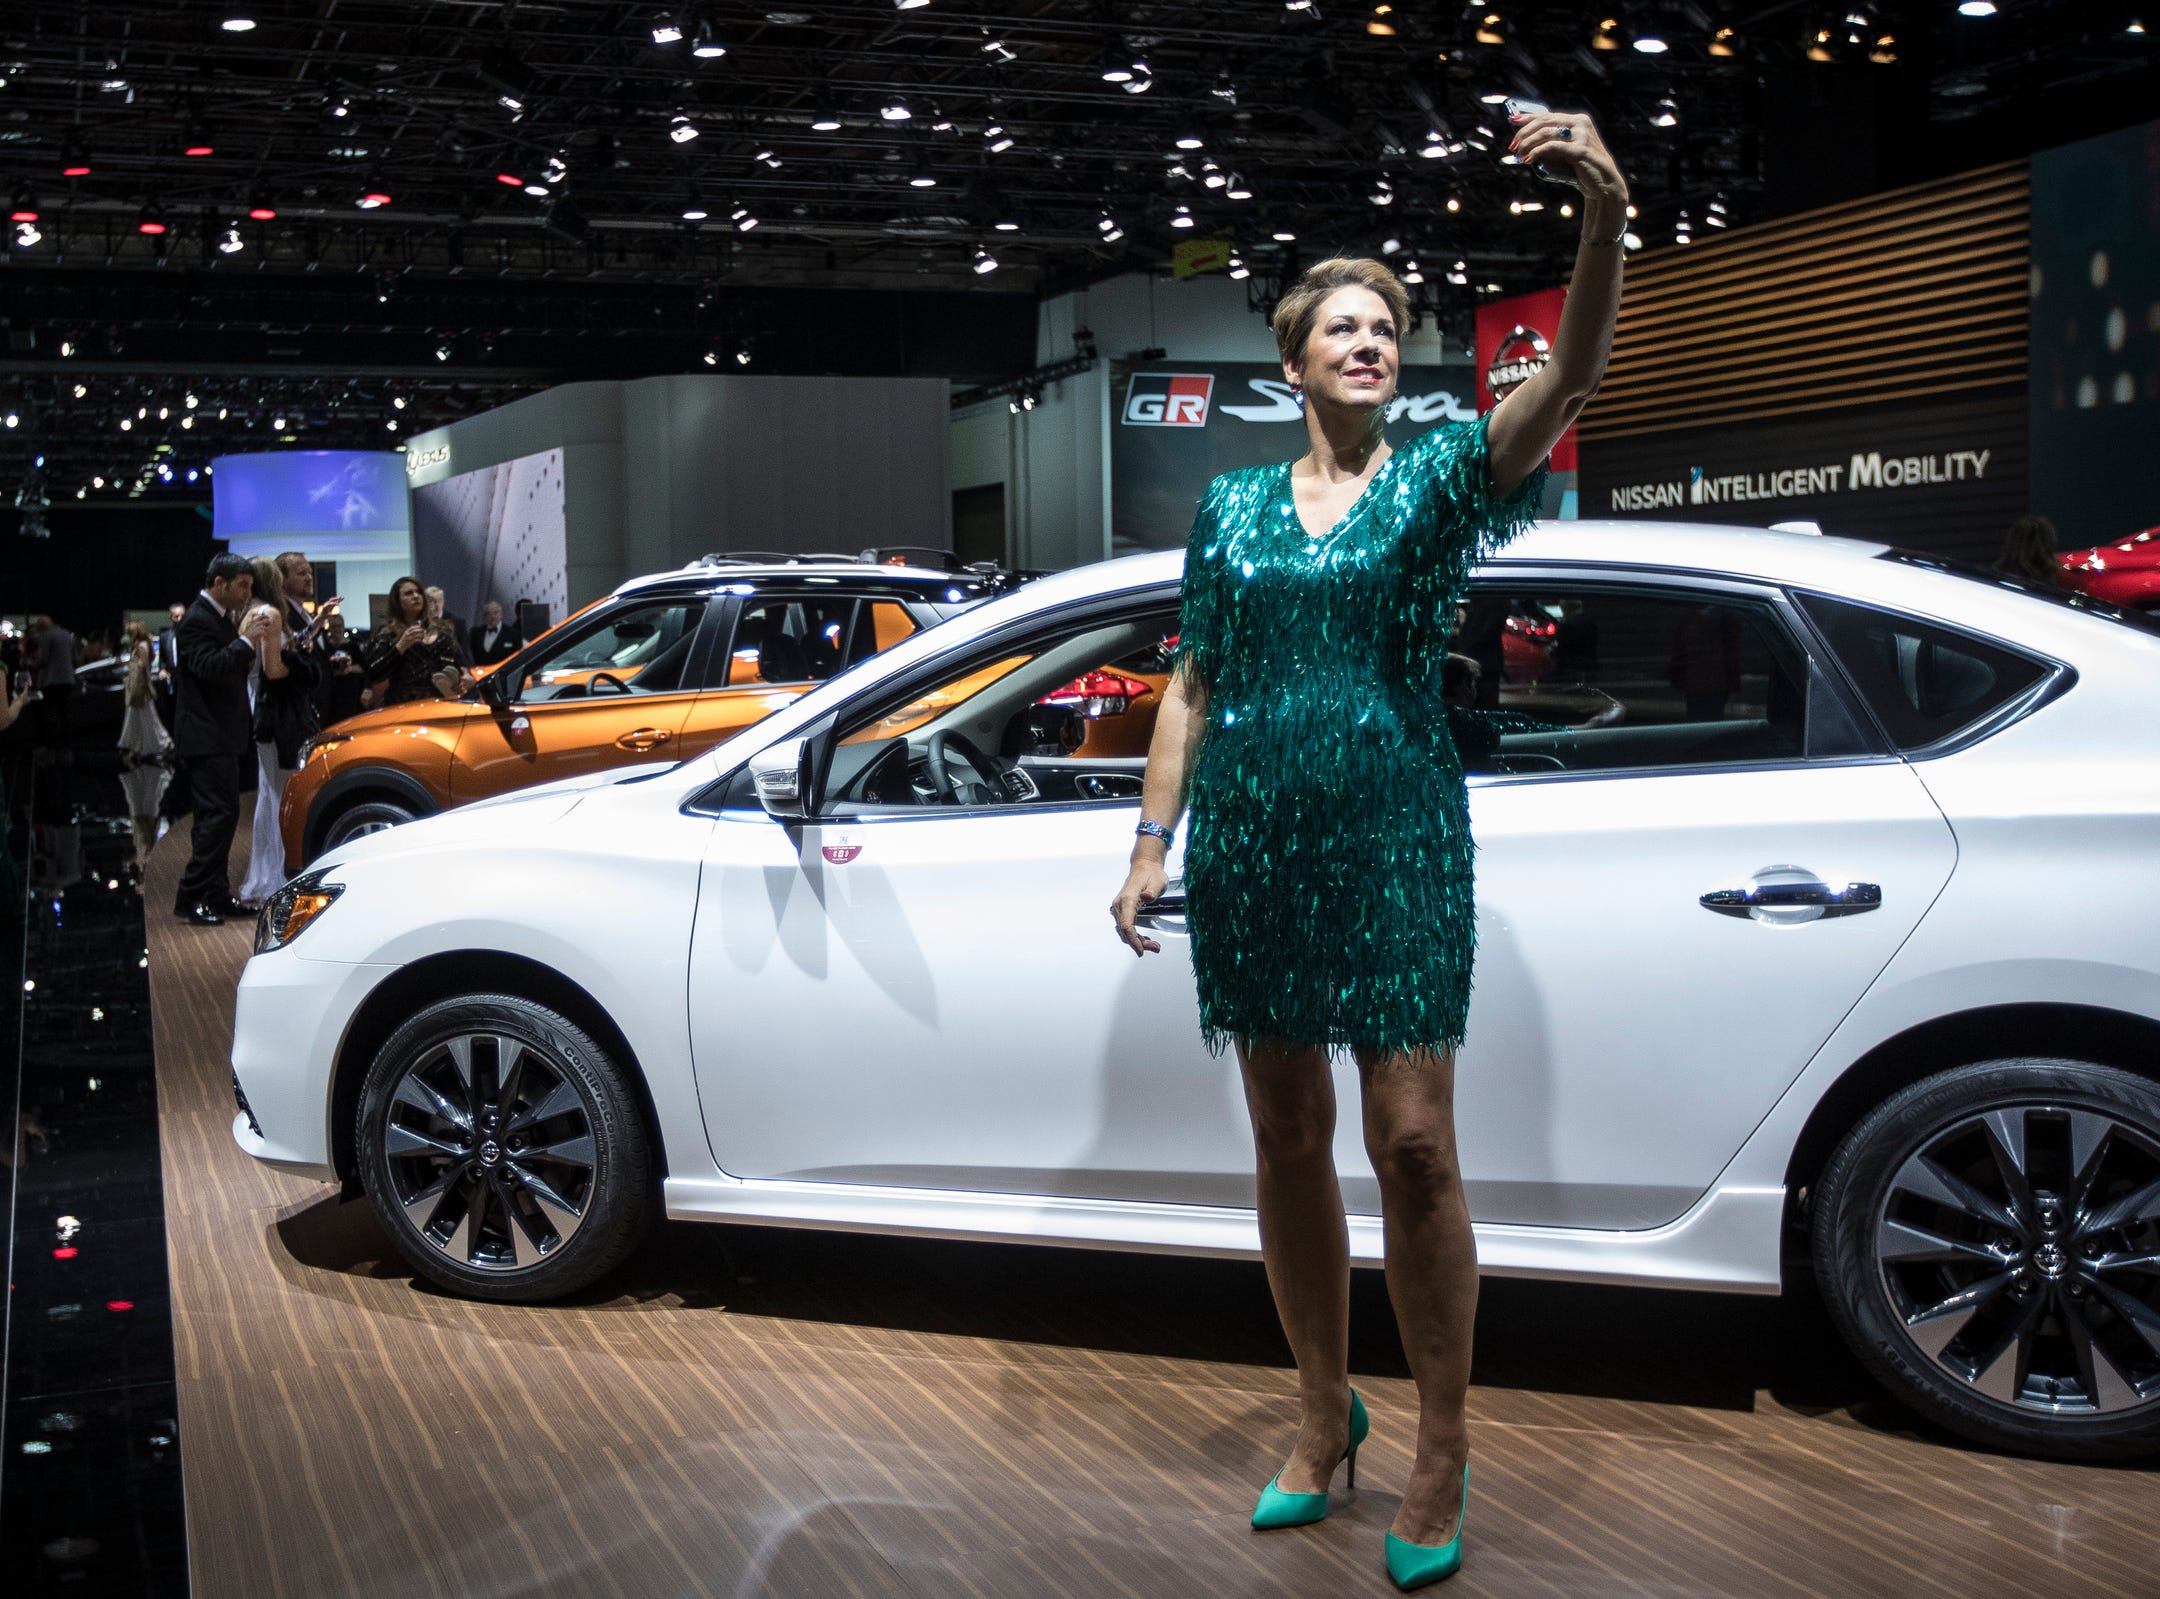 Kelley Stodulski of Beverly Hills takes a selfie next to 2019 Nissan Sentra during the 2019 North American International Auto Show Charity Preview at Cobo Center in Detroit on Friday, January 18, 2019.